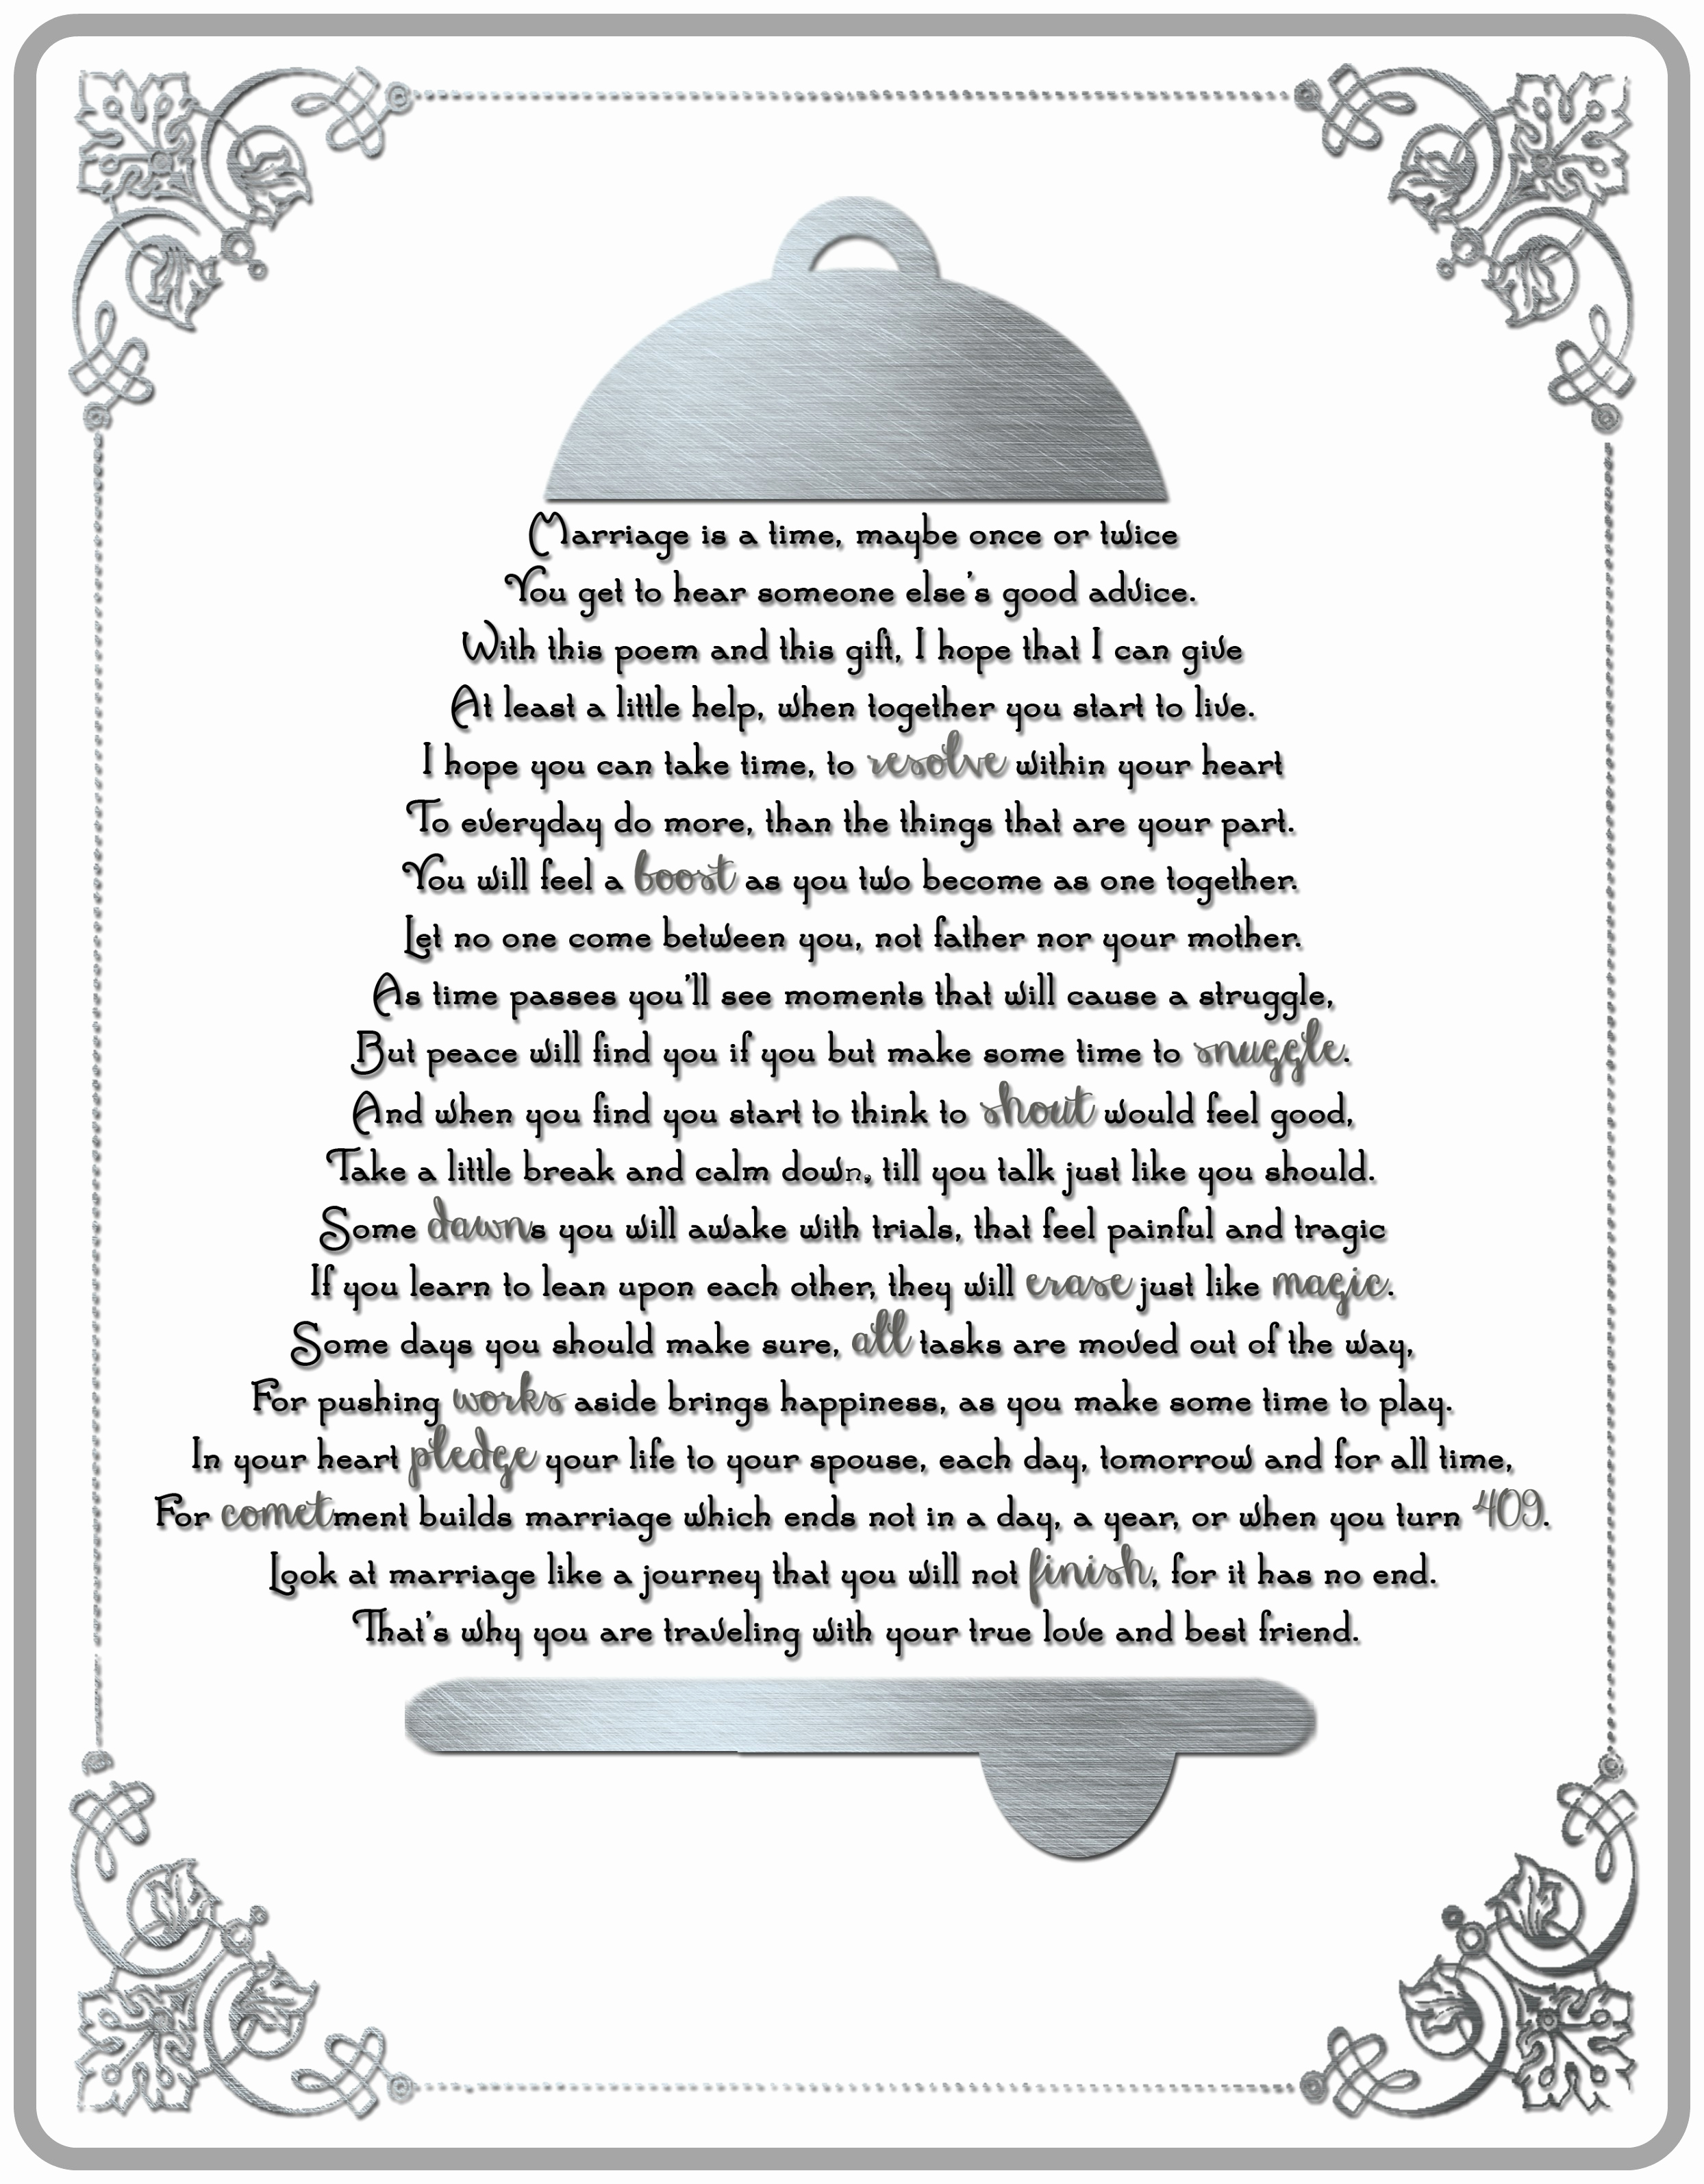 Bridal Shower Invitation Poems Beautiful Free Wedding Shower Poems and Quotes Image Quotes at